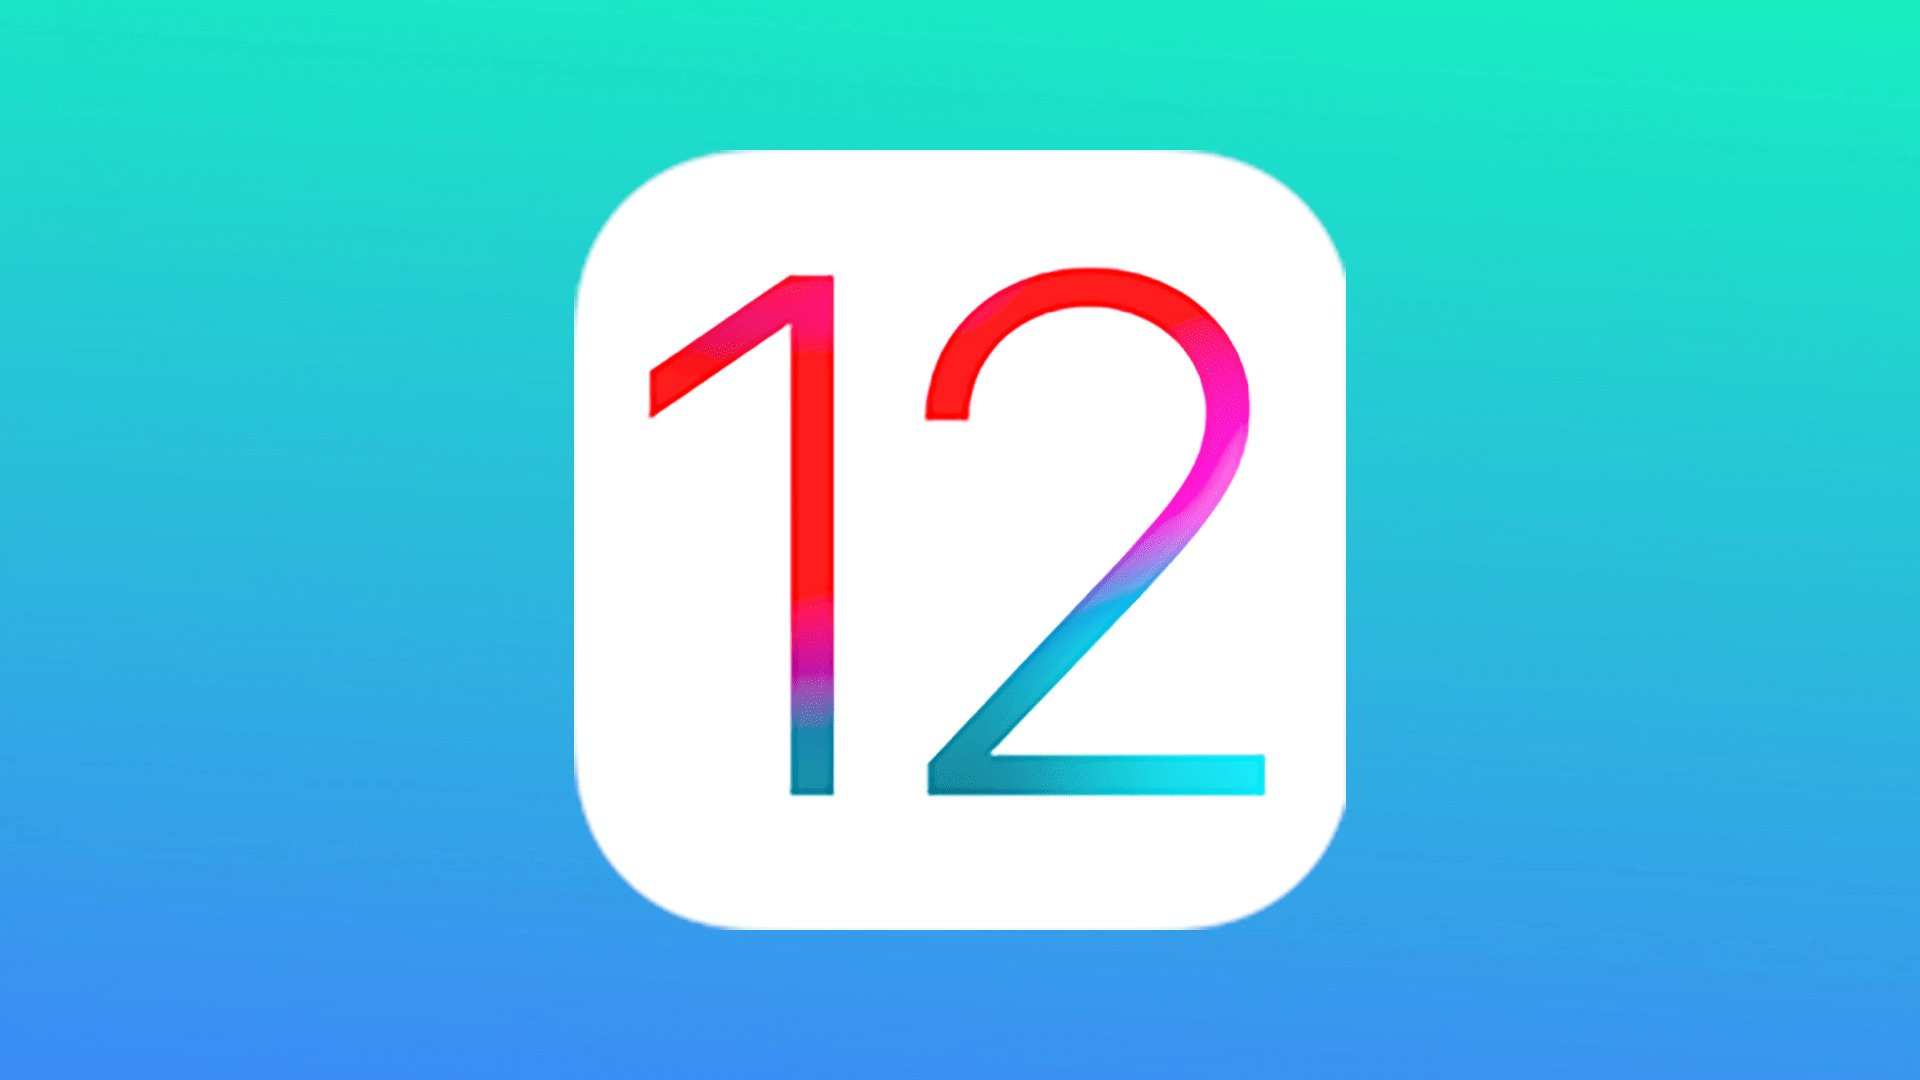 Apple removes iOS 12 Developer Beta 7 OTA update due to performance issues